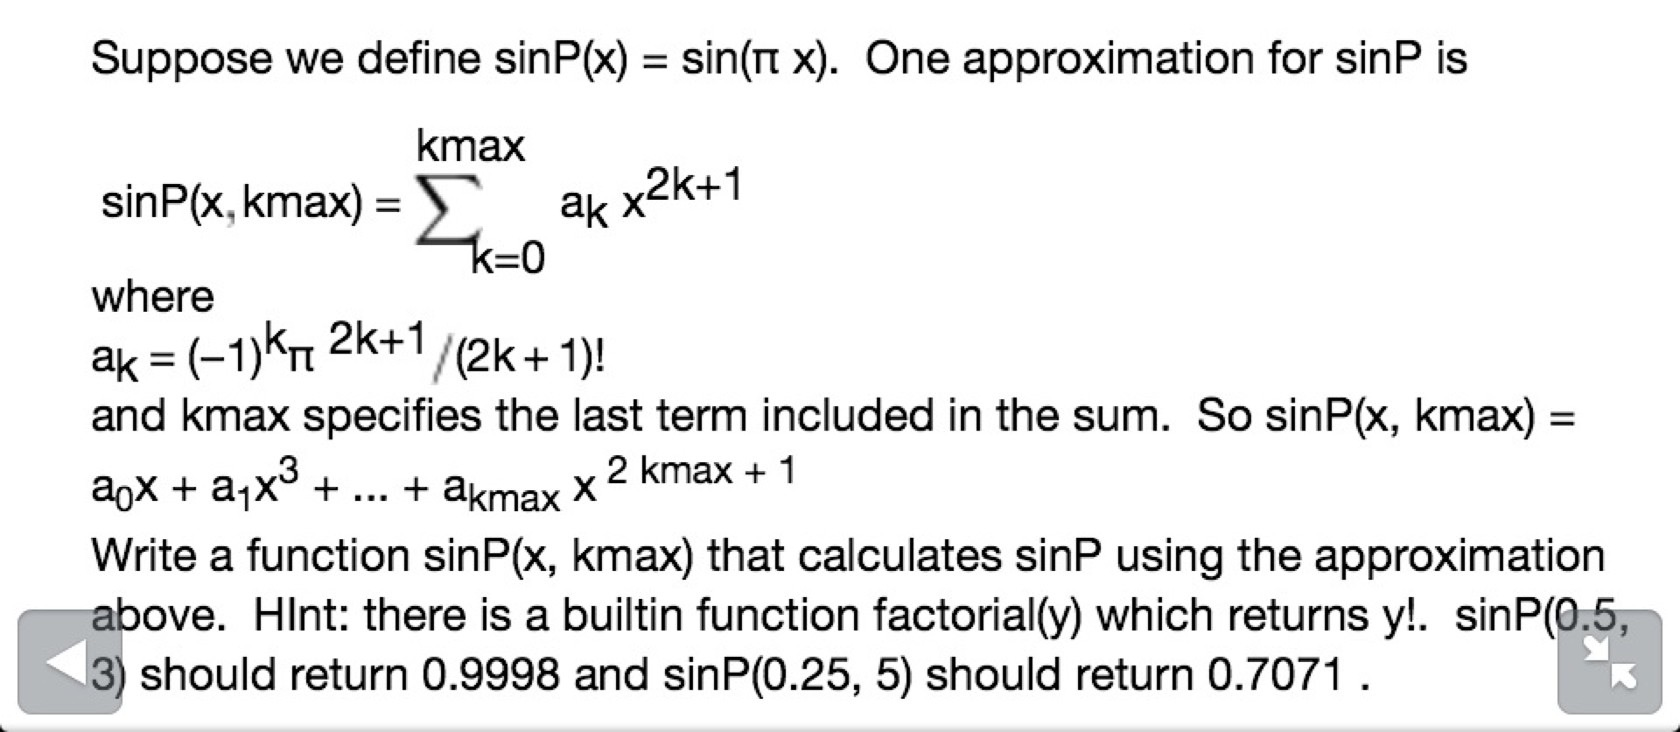 Suppose we define sinP(x) = sin(pi x). One approxi